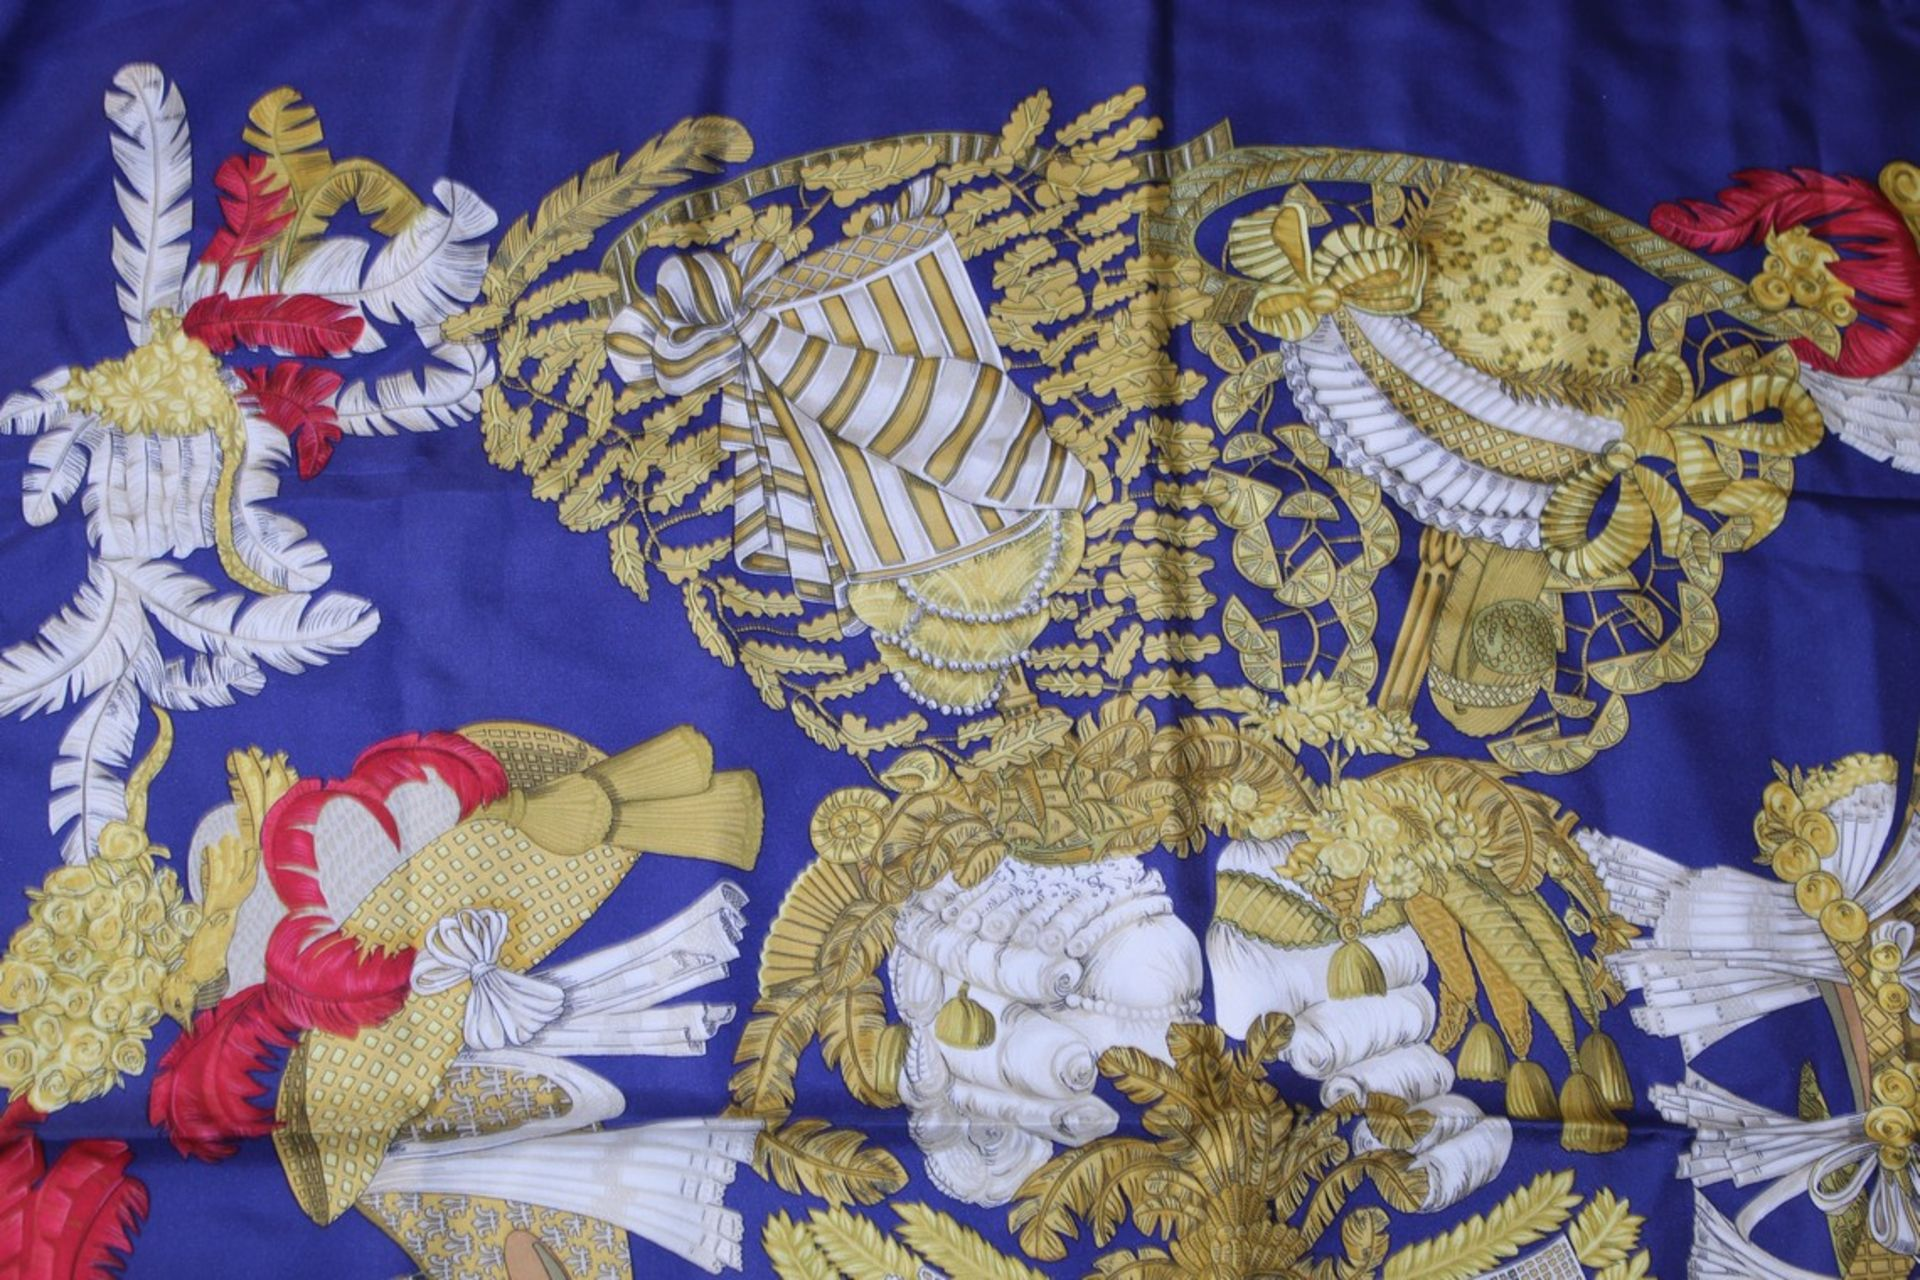 RRP £680 Hermes 100% Twill Silk Chapeau By Annie Faivre, Dark Blue/Gold/Red 90X90Cm, Condition - Image 3 of 3